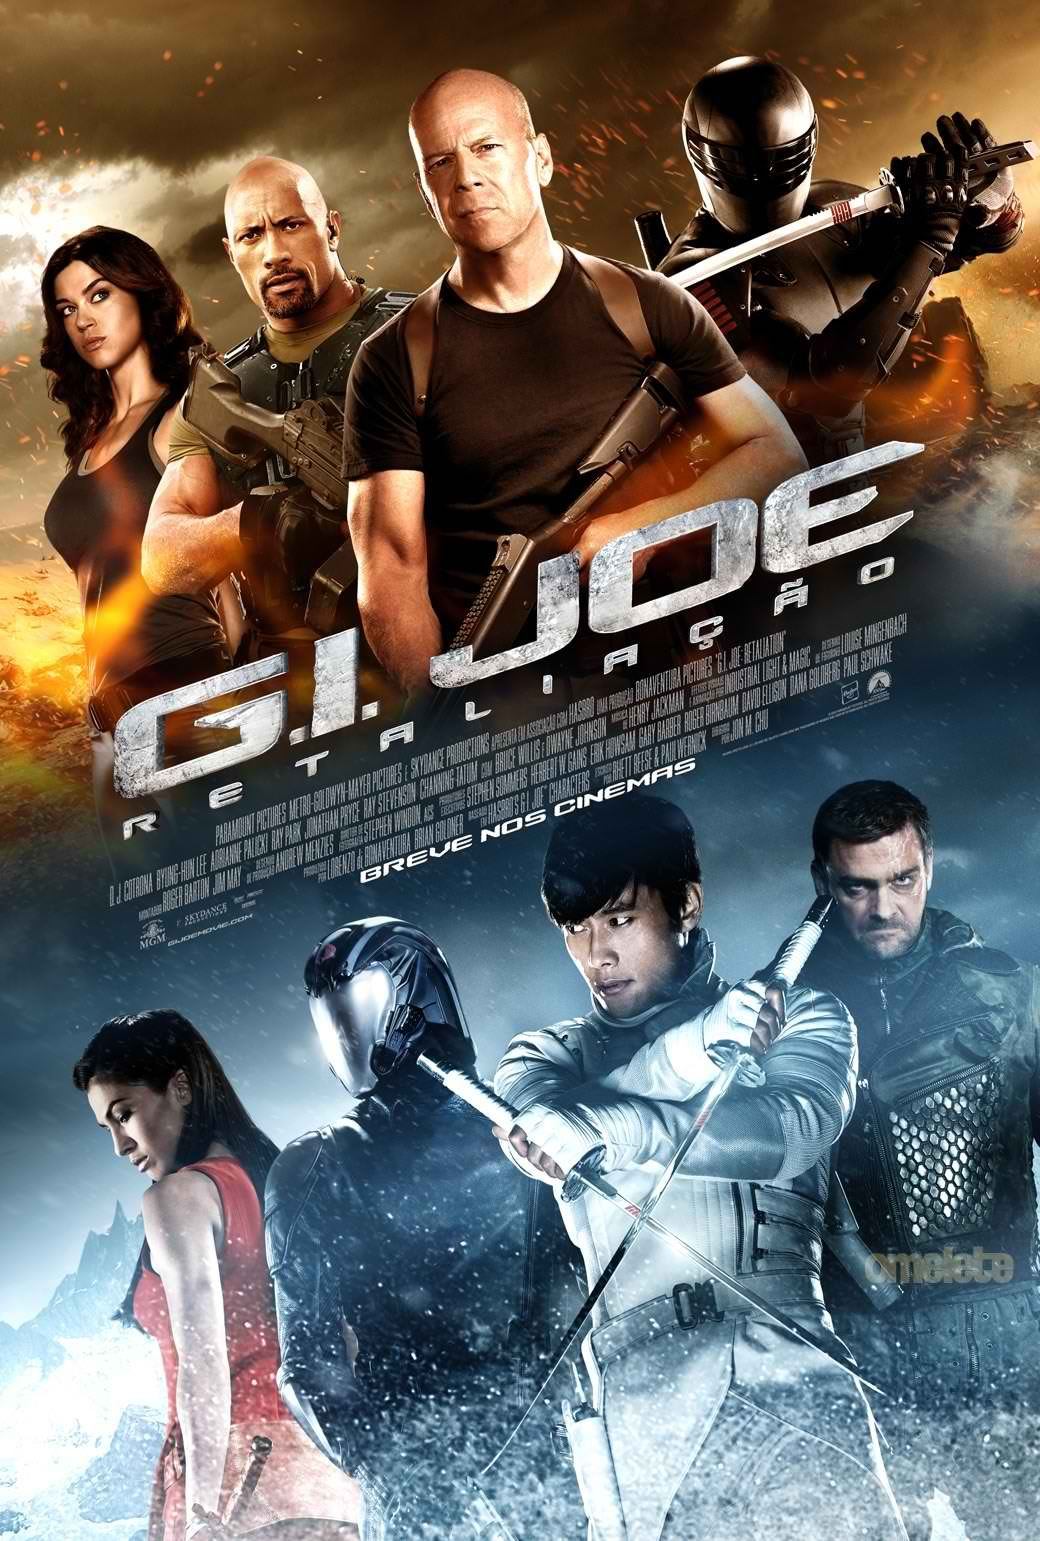 Despite The Somewhat Generic Looking Action Movie Poster G I Joe